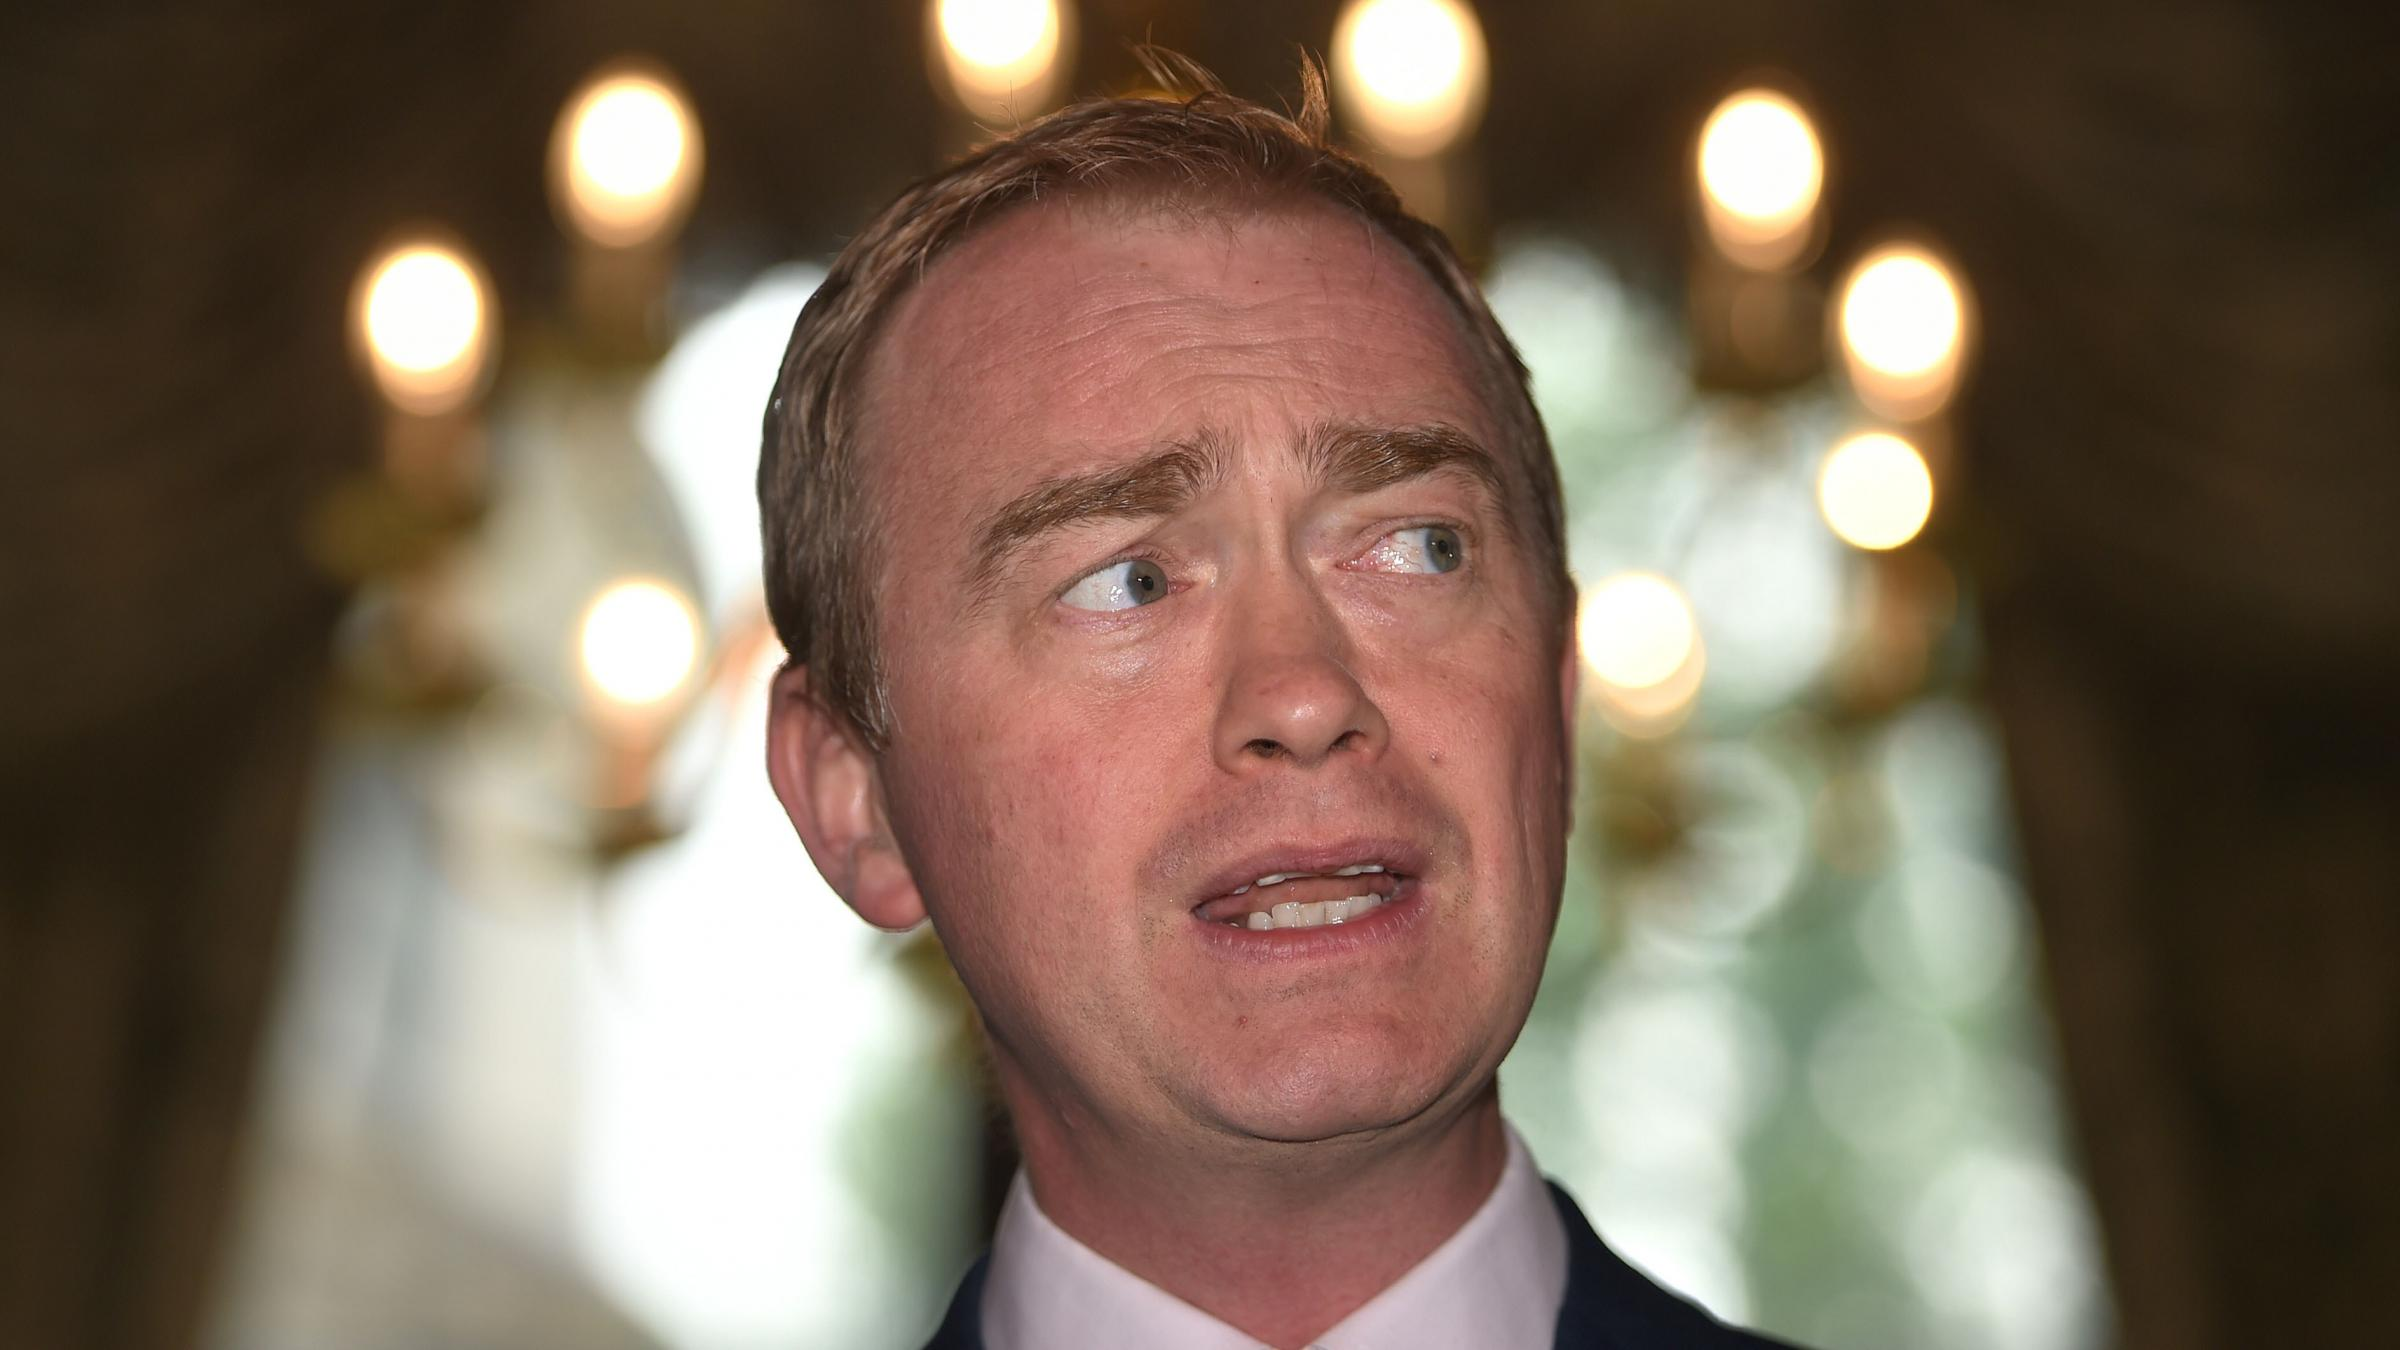 Tim Farron quits as Lib Dem leader